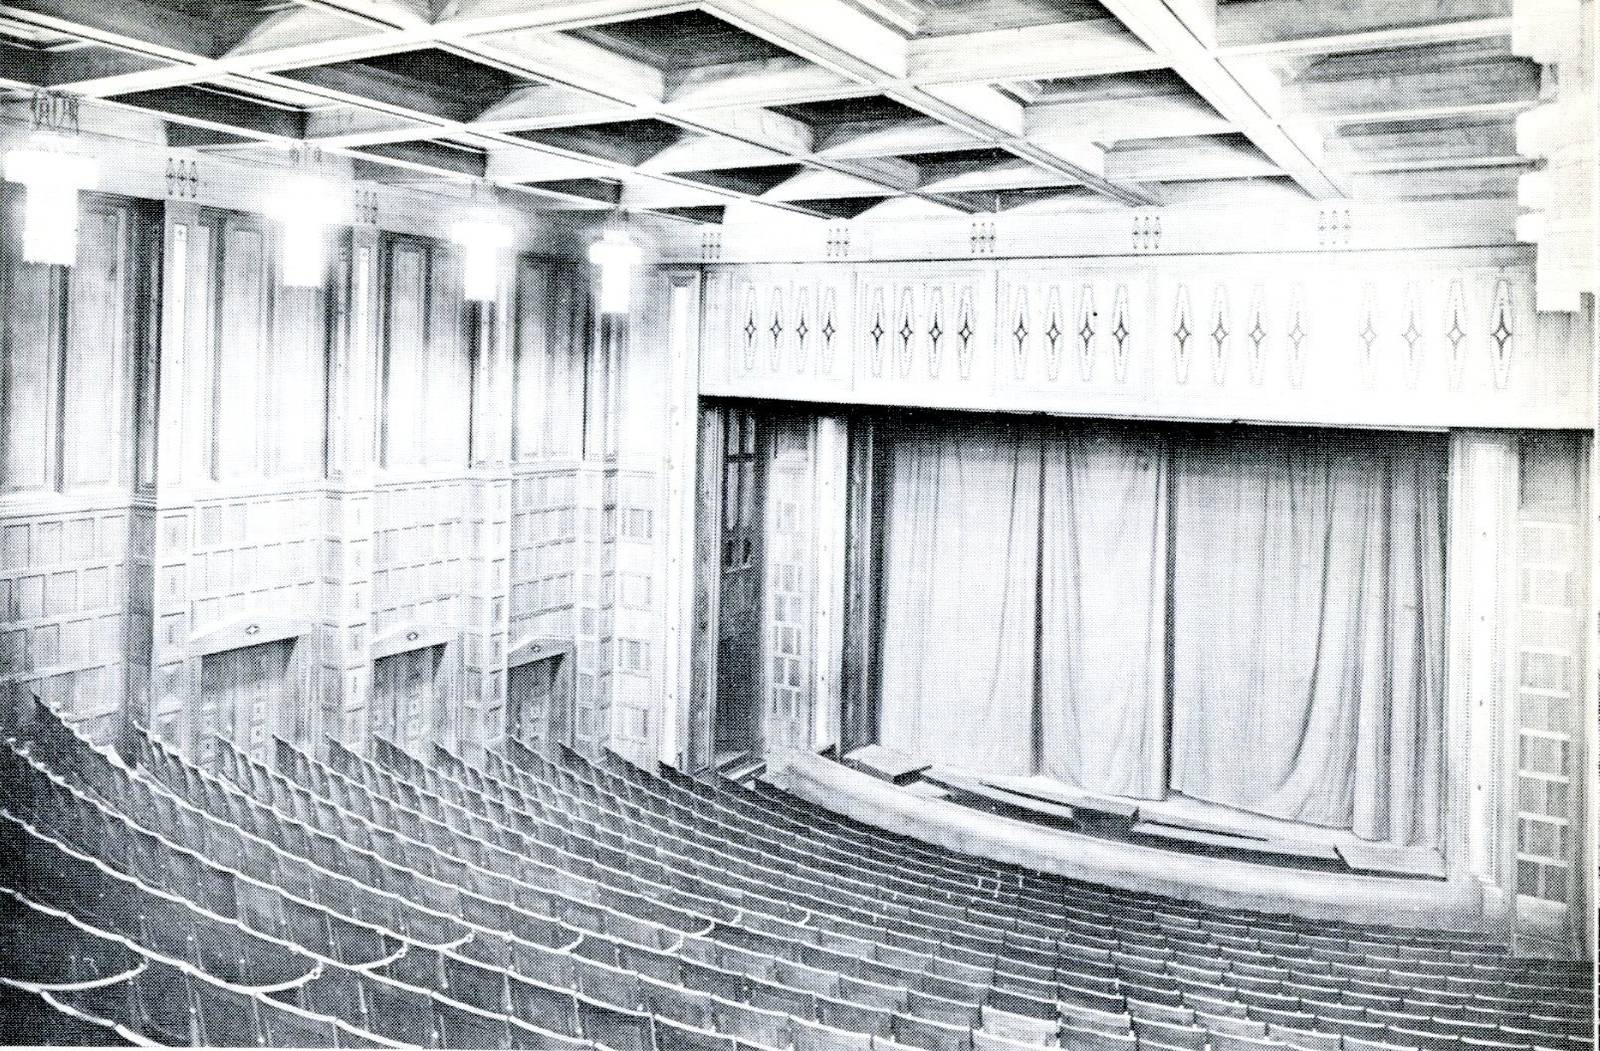 Theatre Database / Theatre Architecture - database, projects